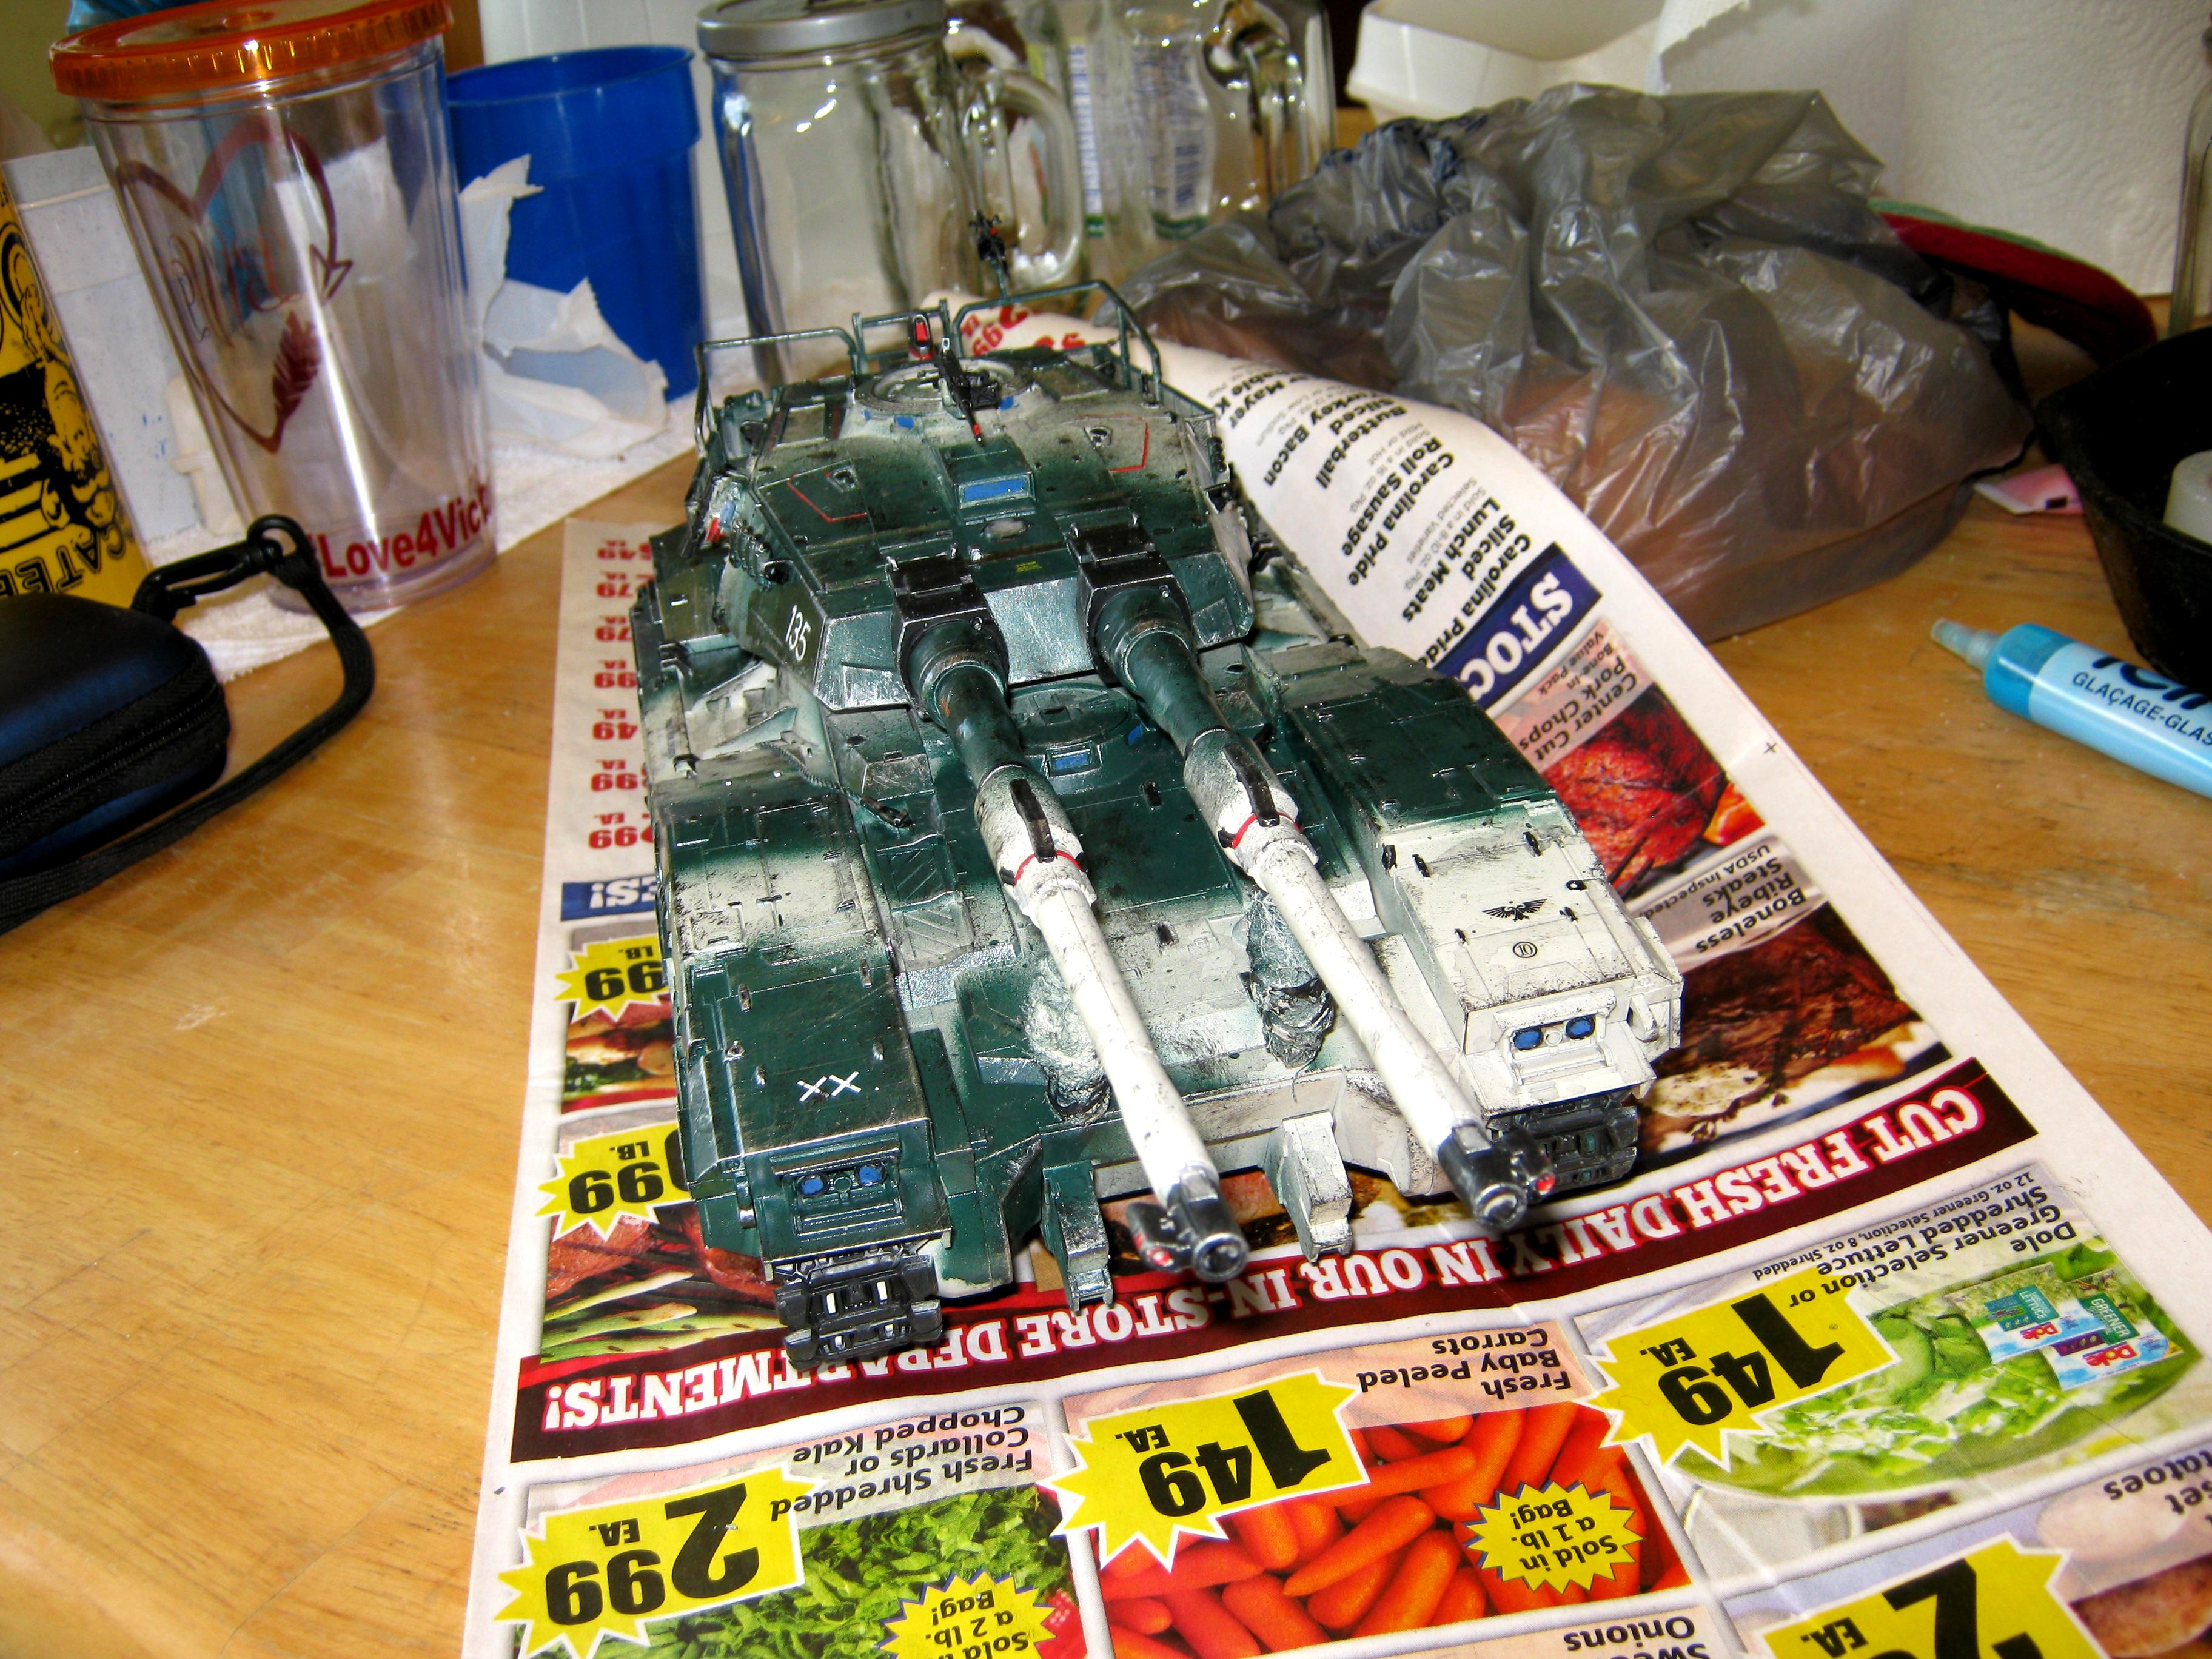 Anime, Conversion, Counts As, Gundam, Imperial, M61a5, Super-heavy, Tank, Tank Destroyer, Type 61